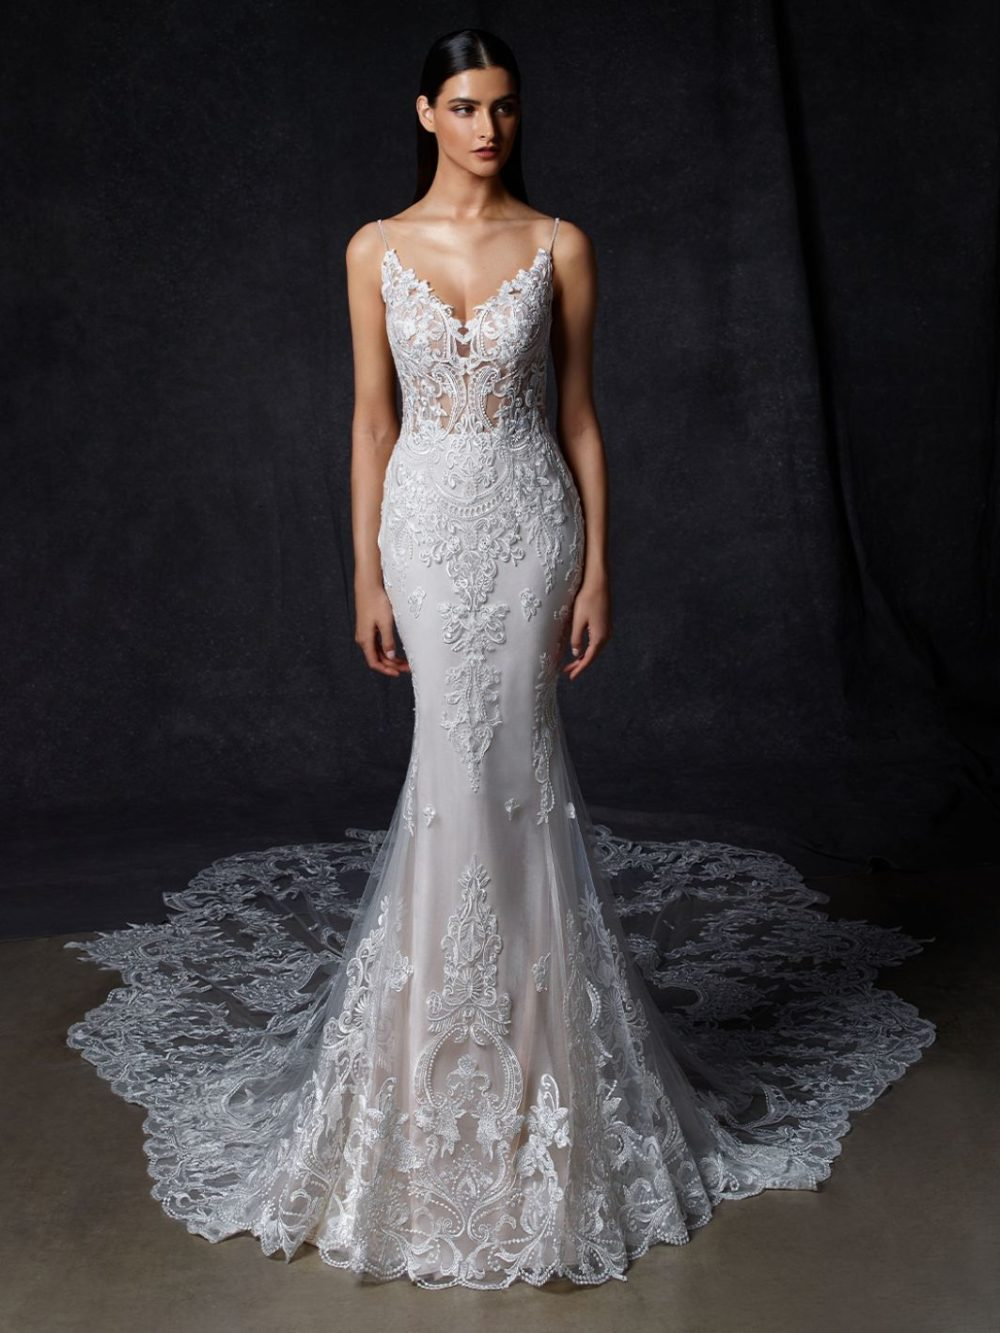 Olyvia by Enzoani Wedding gown dress